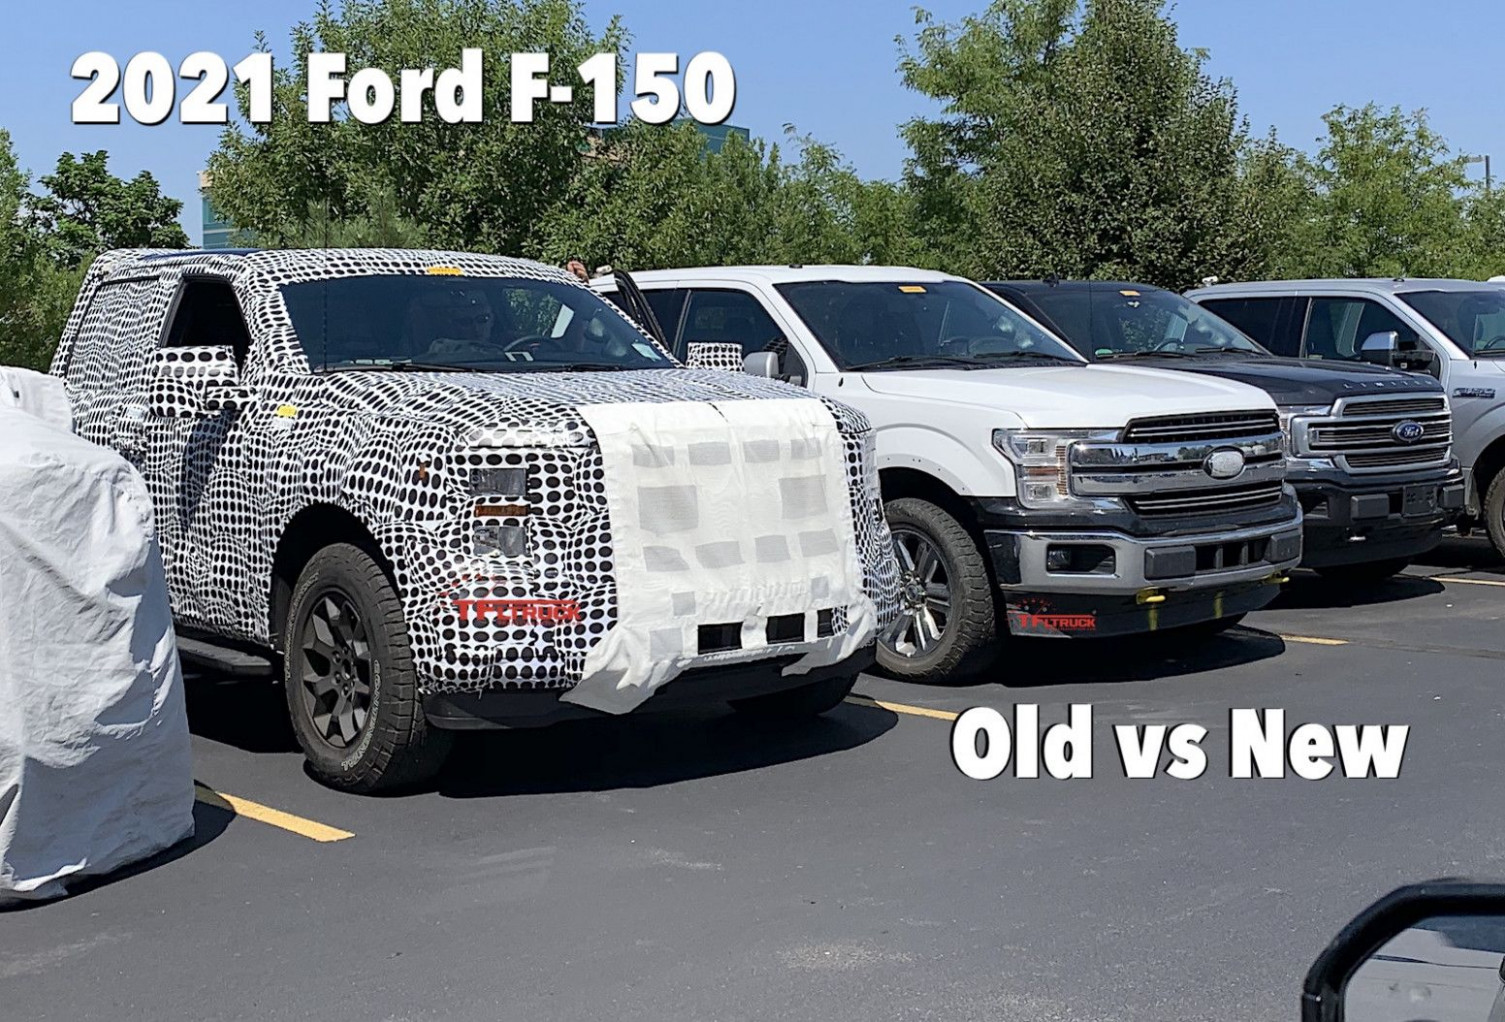 New Concept Spy Shots Ford F350 Diesel